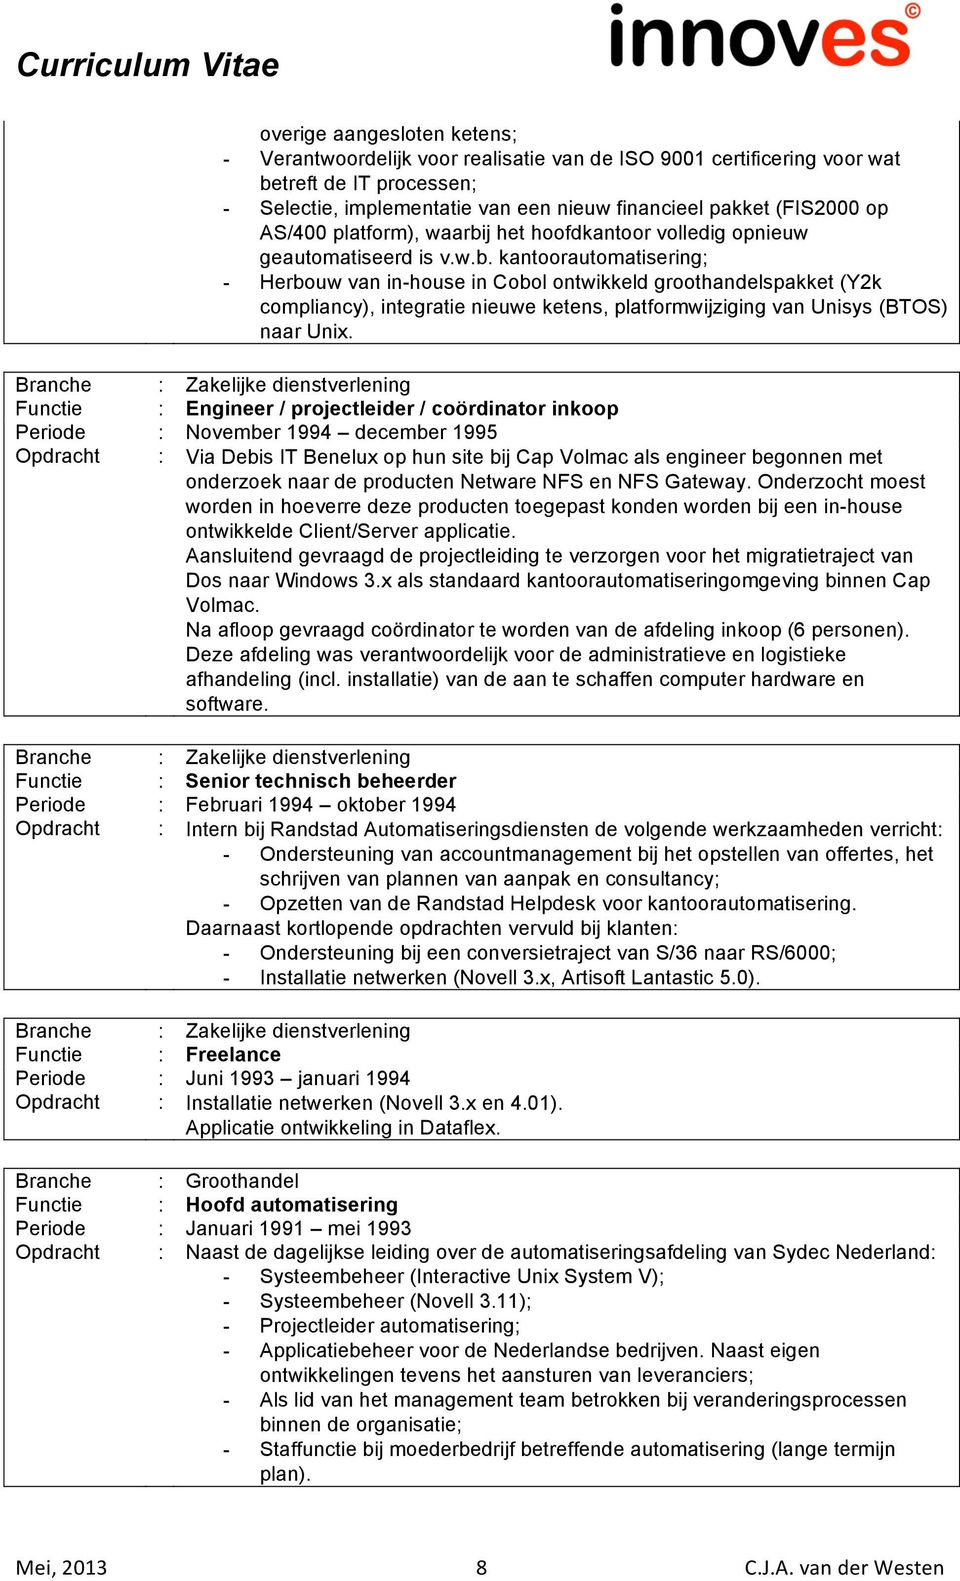 Functie : Engineer / projectleider / coördinator inkoop Periode : November 1994 december 1995 Opdracht : Via Debis IT Benelux op hun site bij Cap Volmac als engineer begonnen met onderzoek naar de